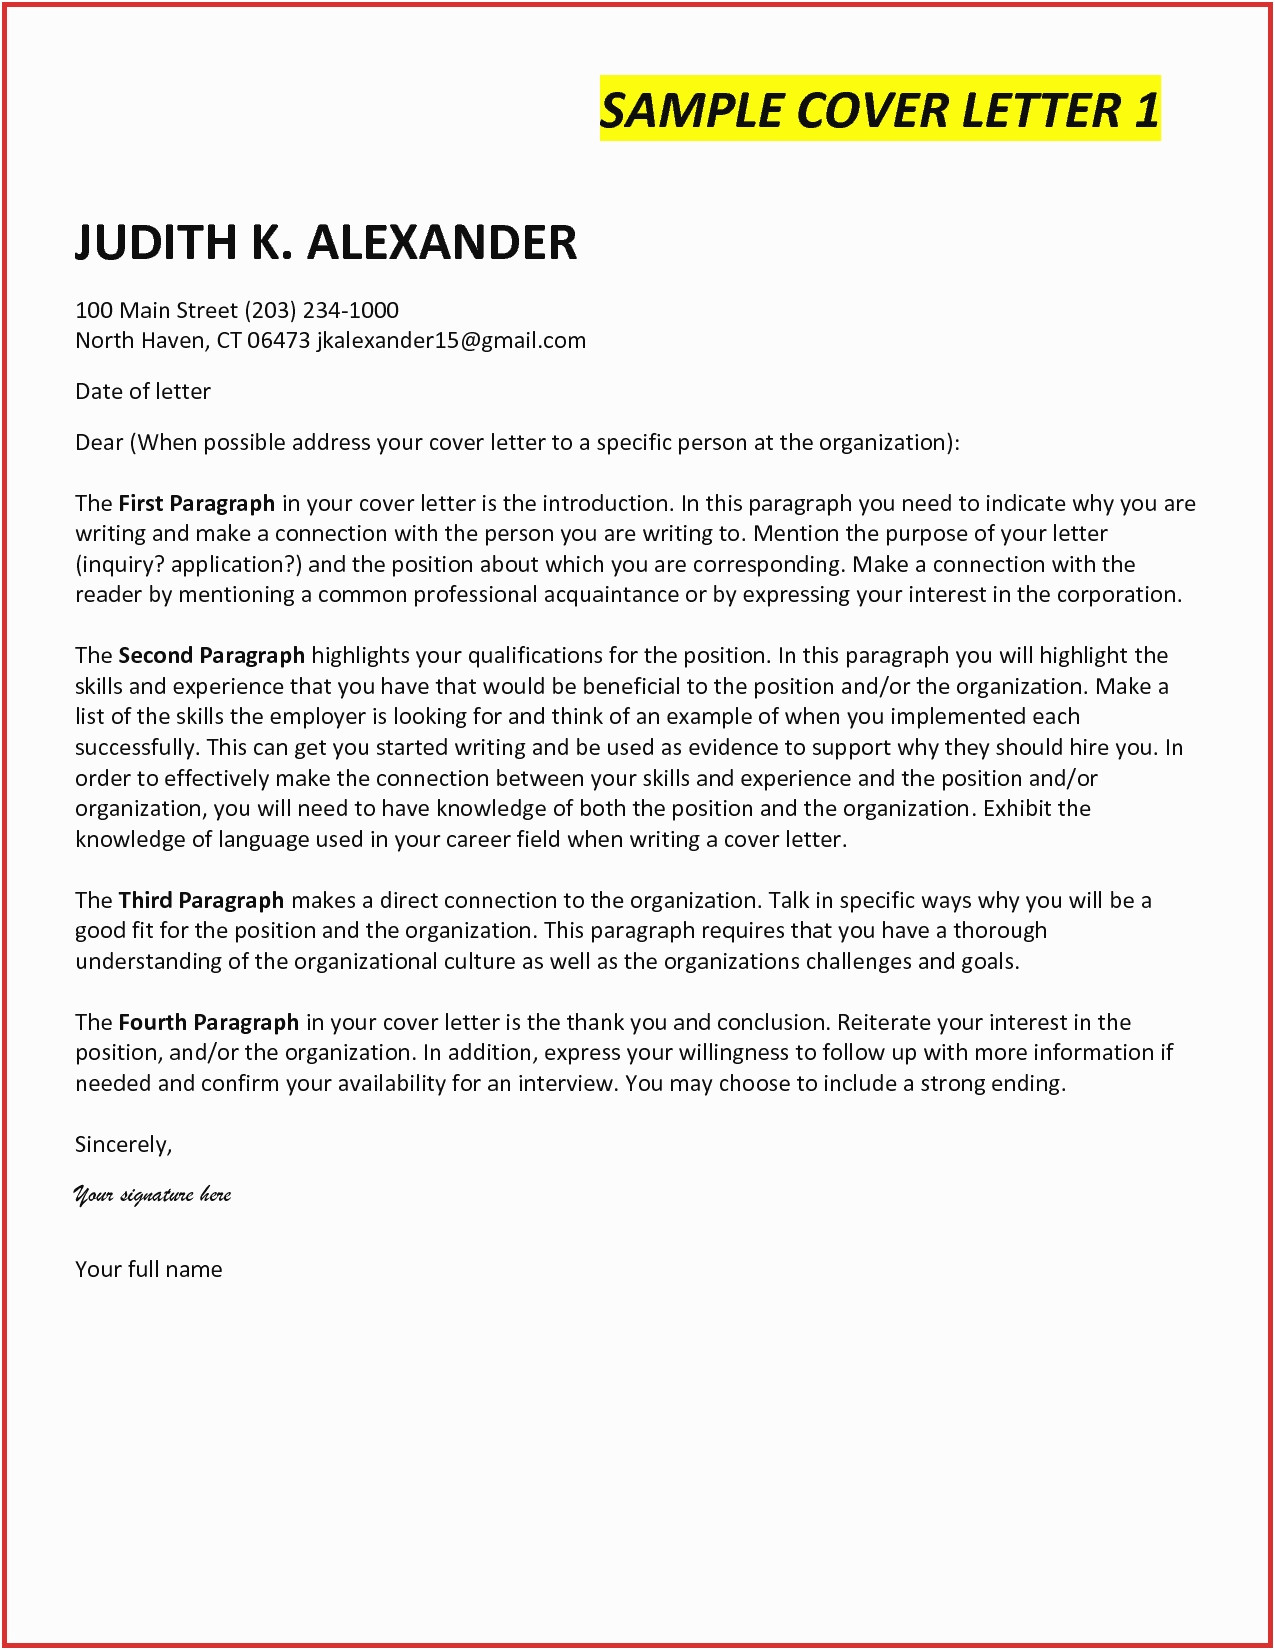 letter of introduction template lovely good opening lines for cover letters choice image cover letter sample